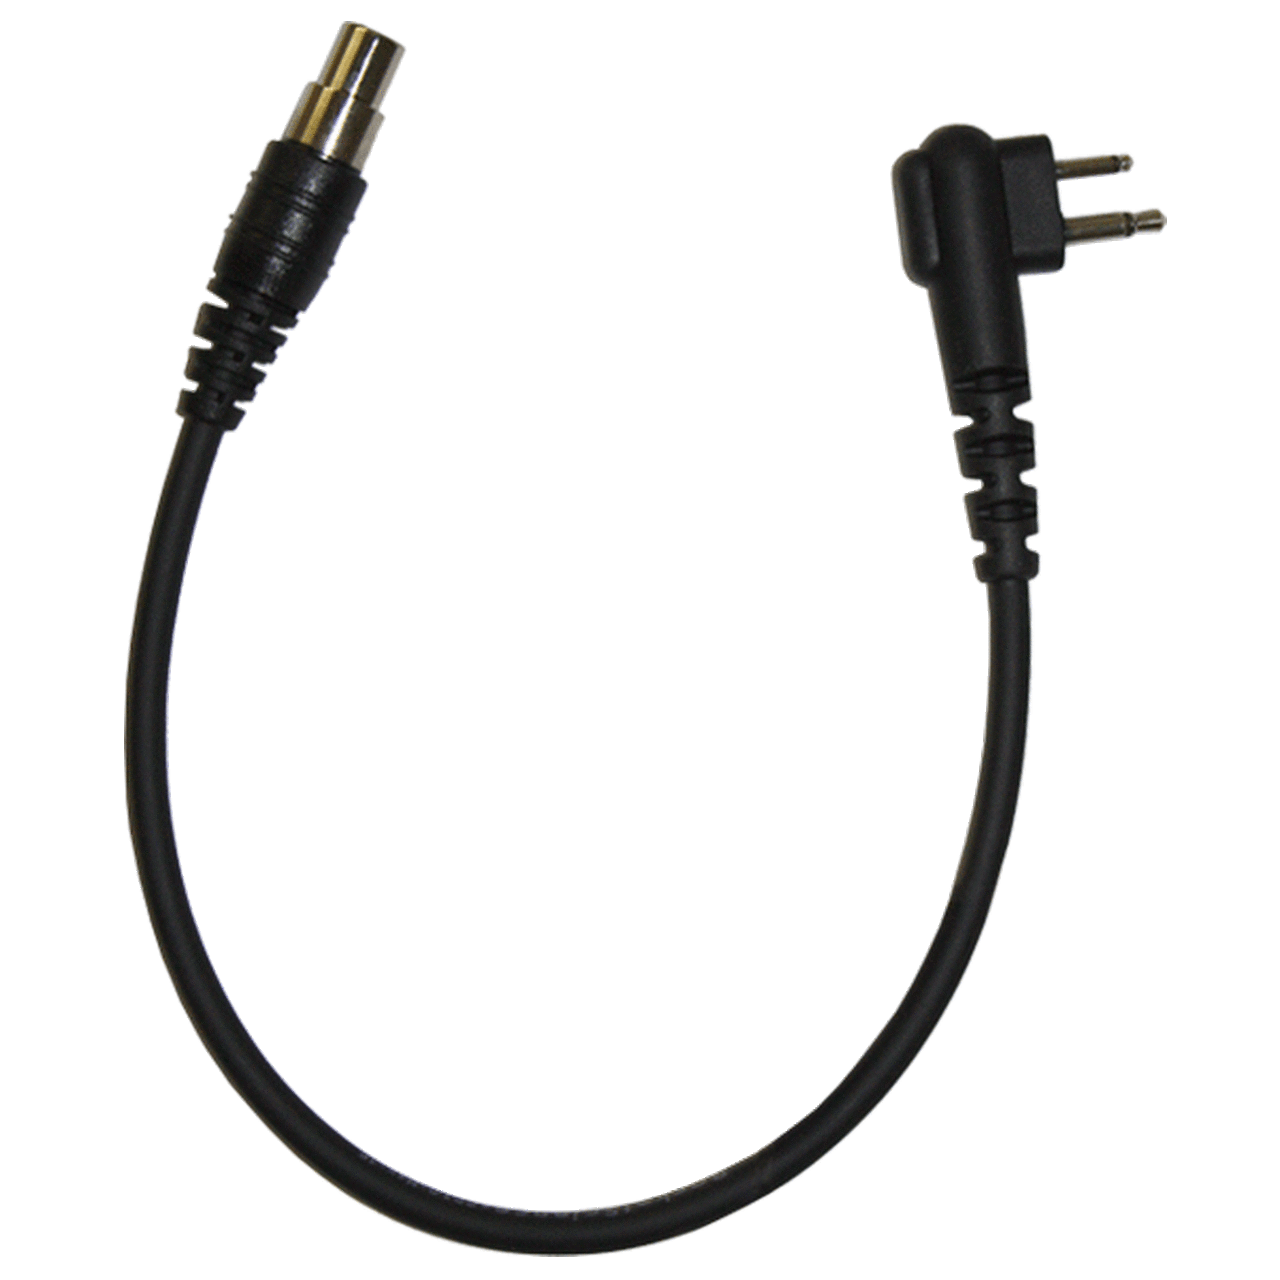 K-Cord Professional Series Headset Cable for Kenwood -Short Cord